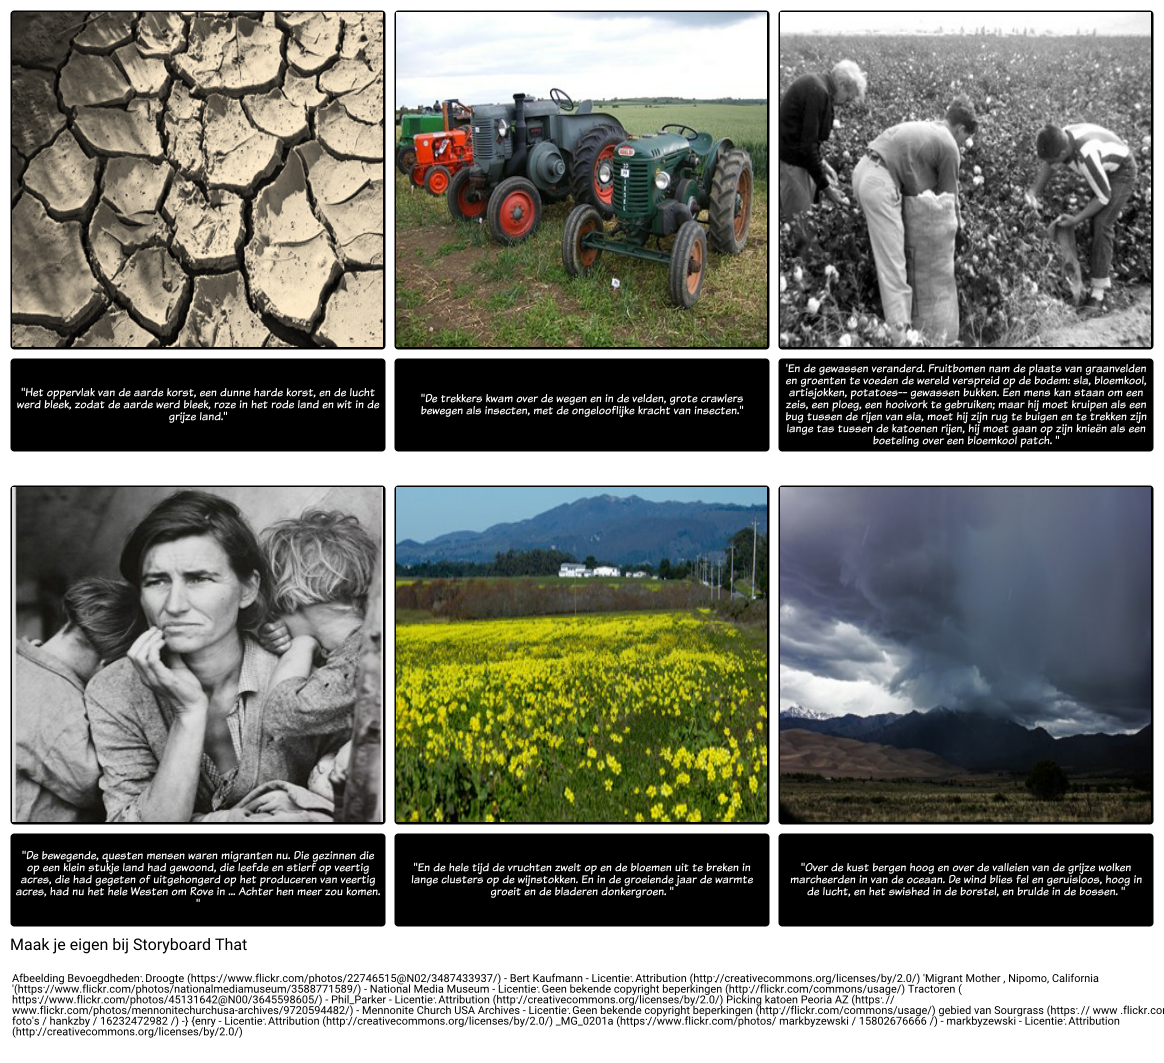 Imagery in The Grapes of Wrath